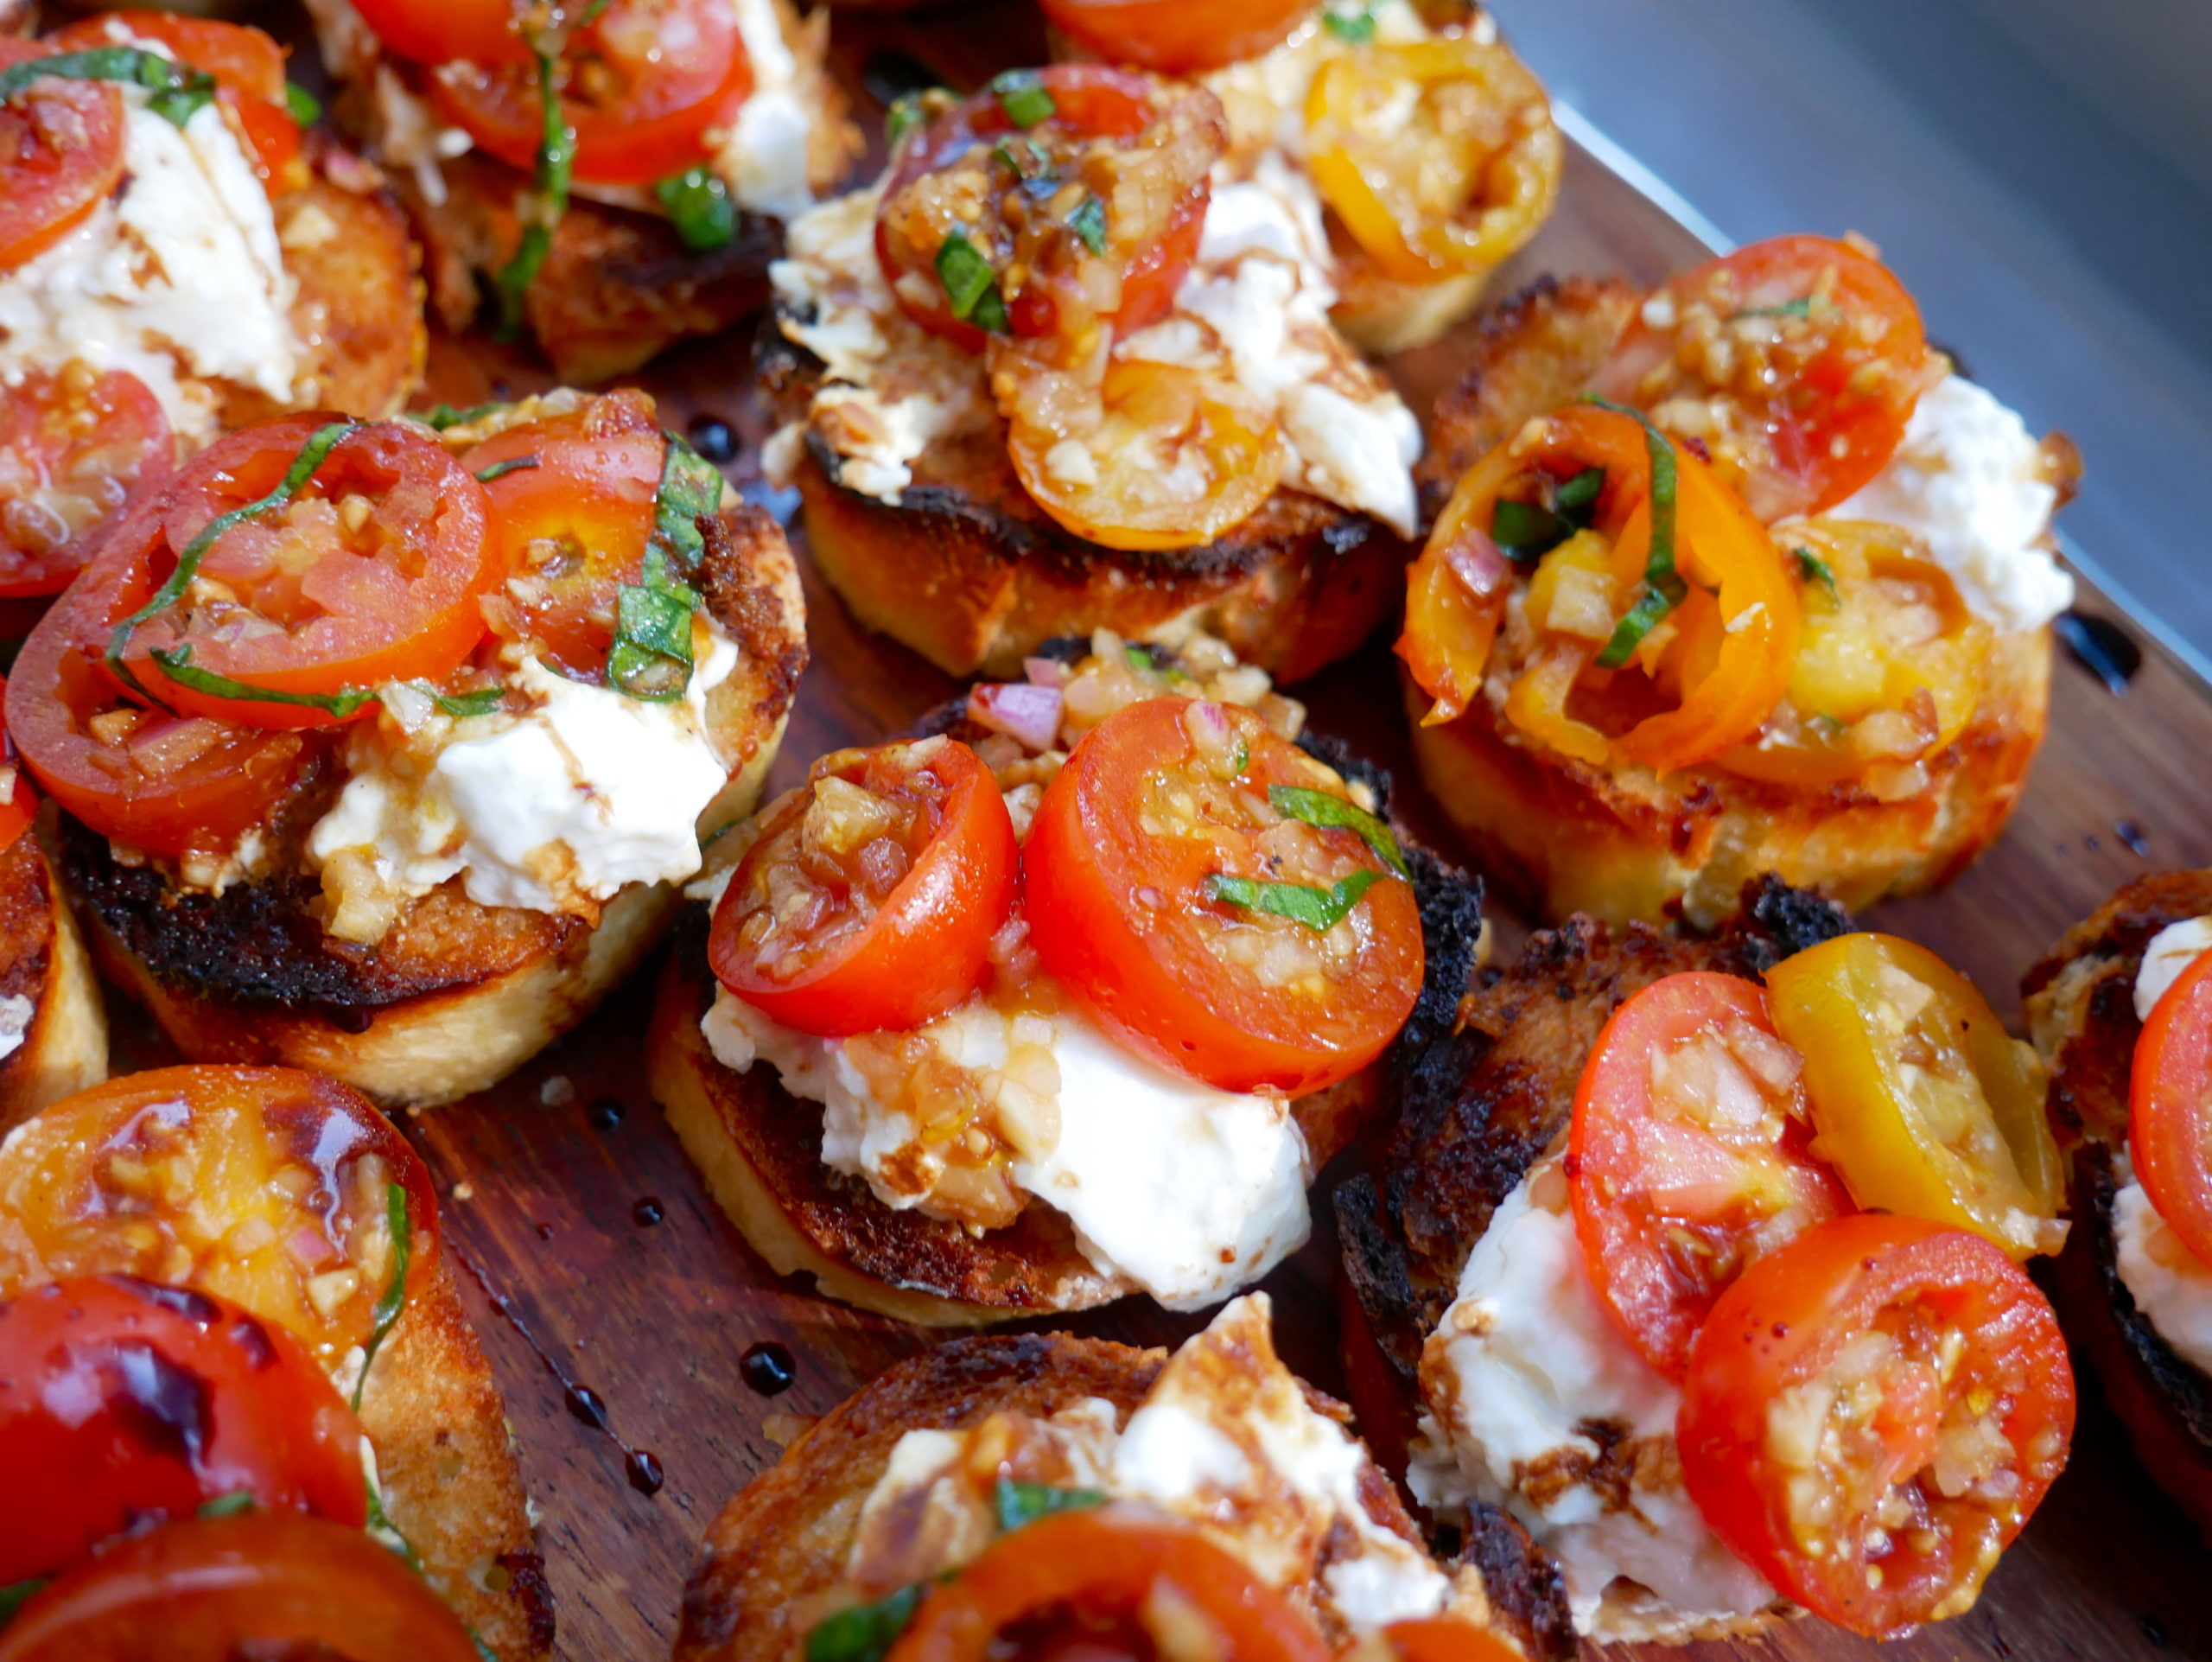 burrata bruschetta with tomatoes, balsamic glaze, and burrata